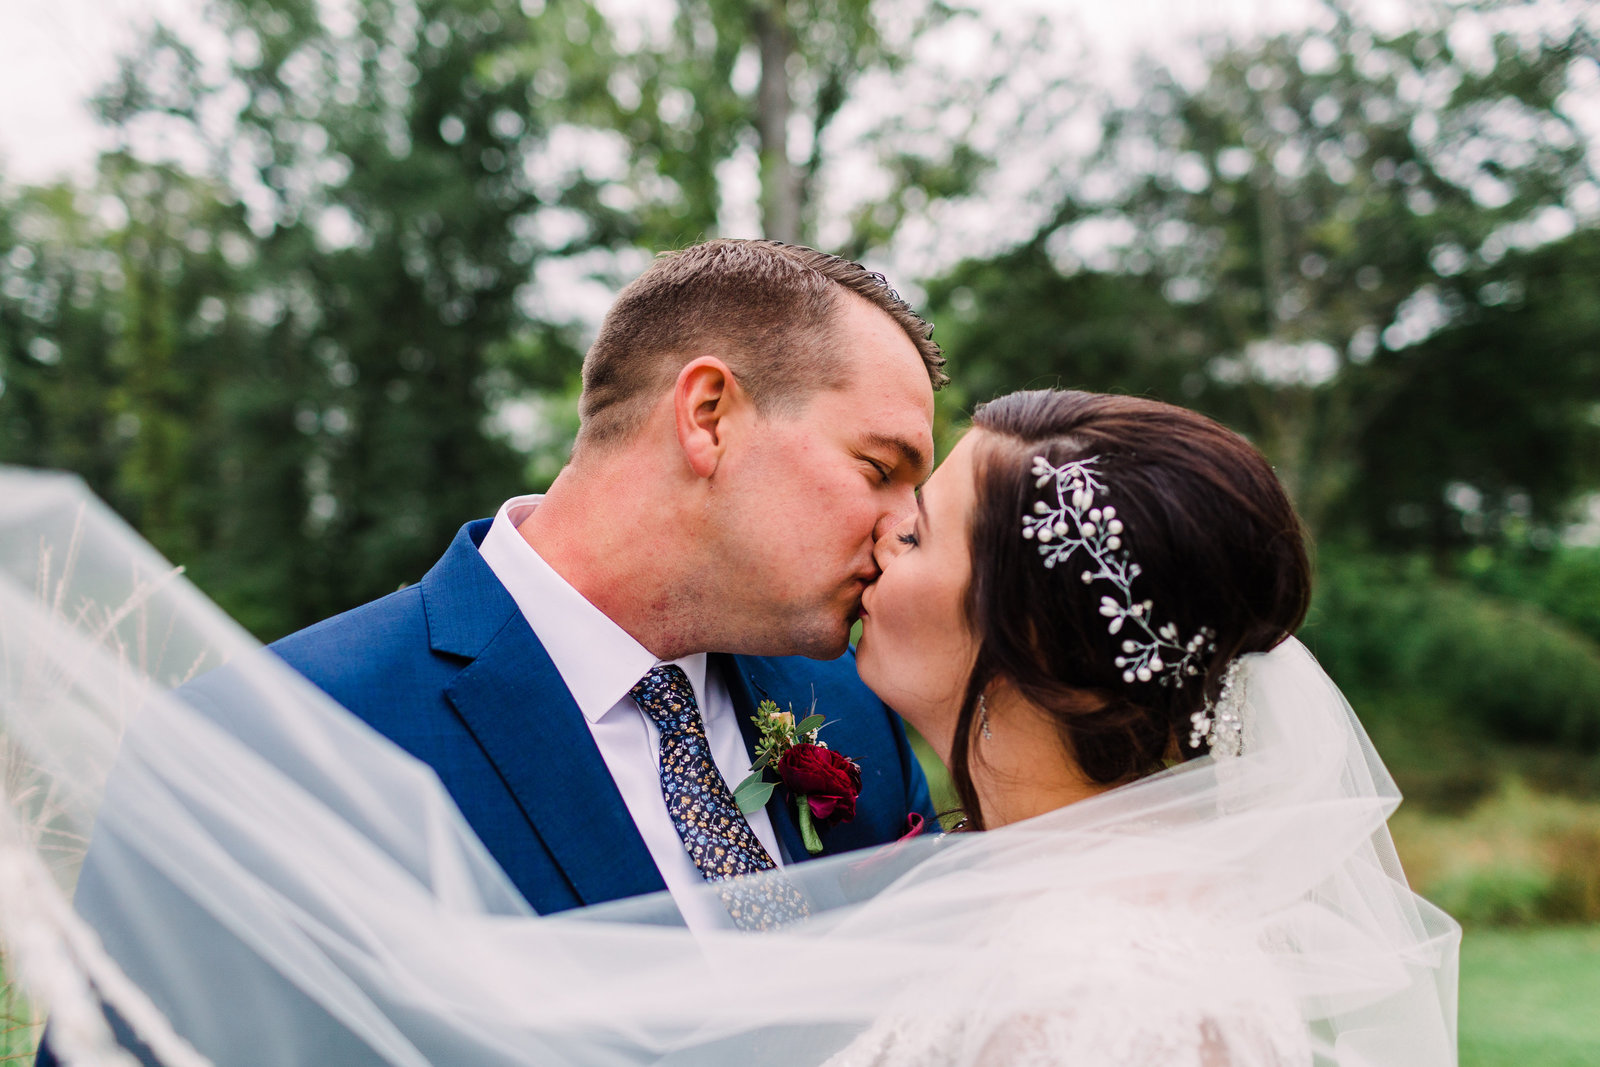 Bride and Groom portrait from Rustic yet elegant wedding at Three Barn Farm with pops of burgundy and navy by Jackelynn Noel Photography